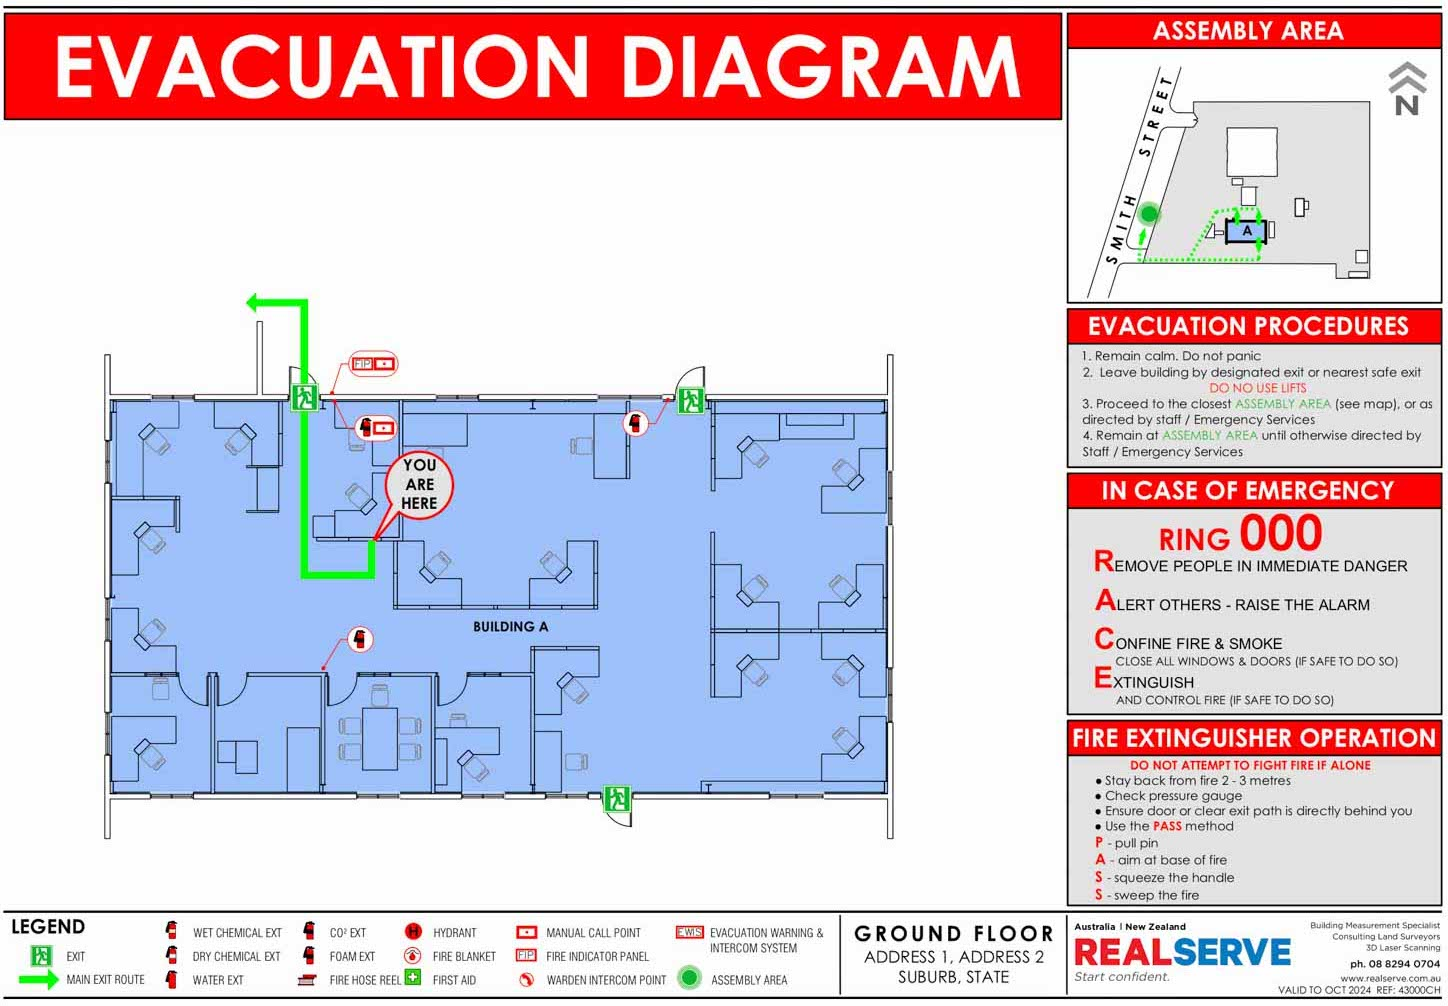 REALSERVE EVACUATION PLAN SAMPLE GROUND FLOOR LEVEL